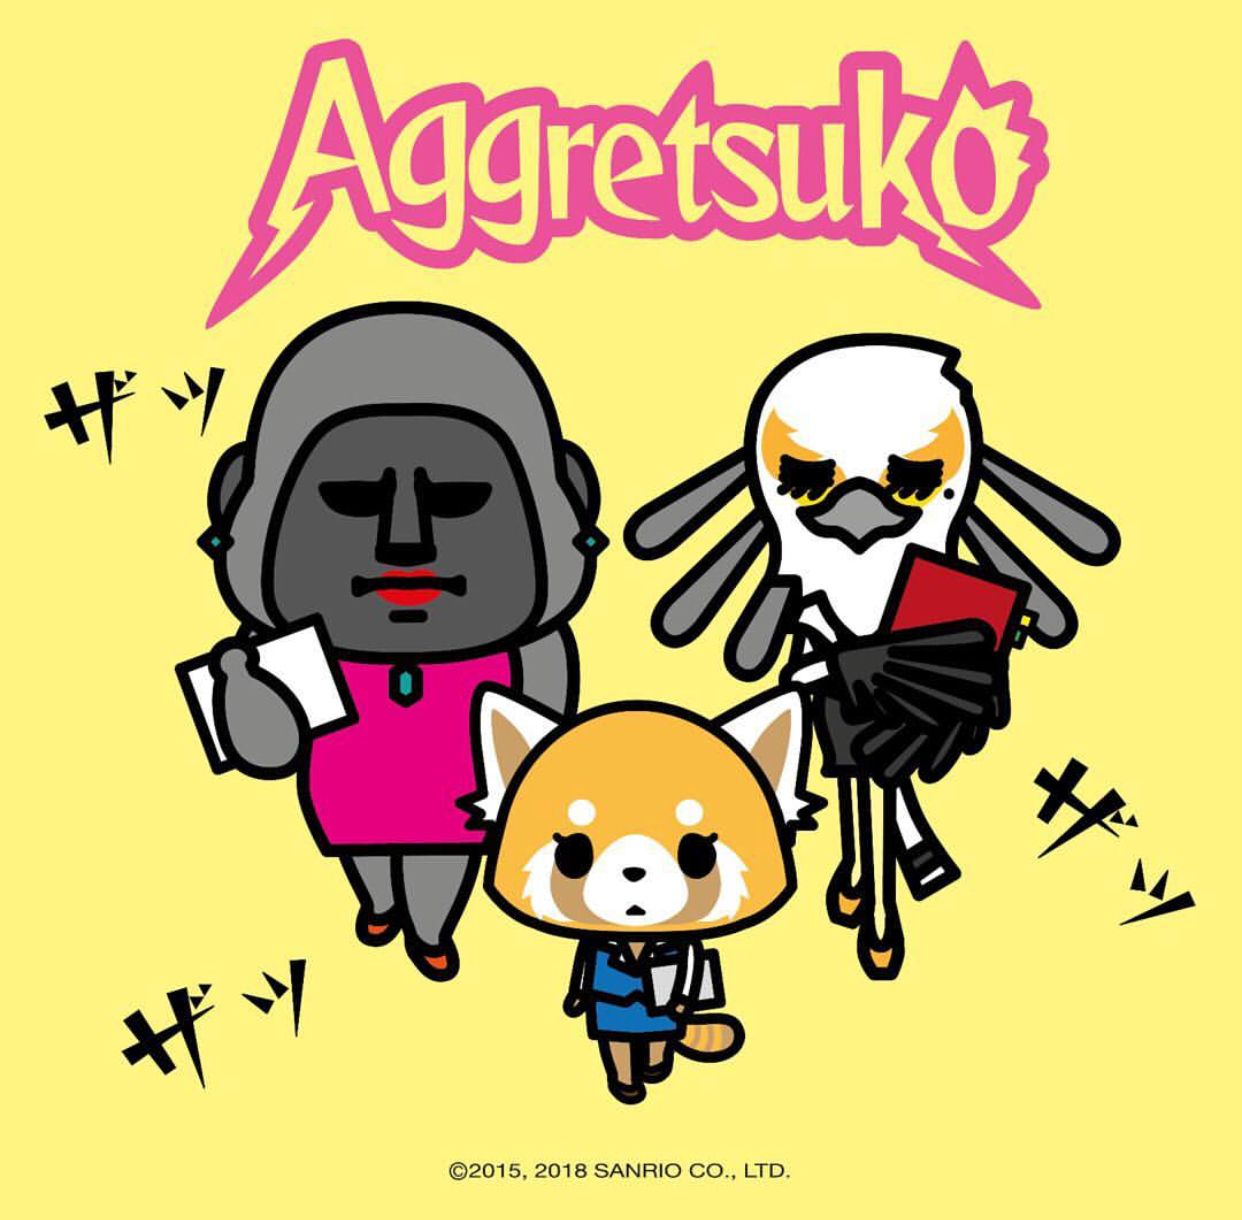 Have you checked Aggretsuko on Netflix yet??? Anime love